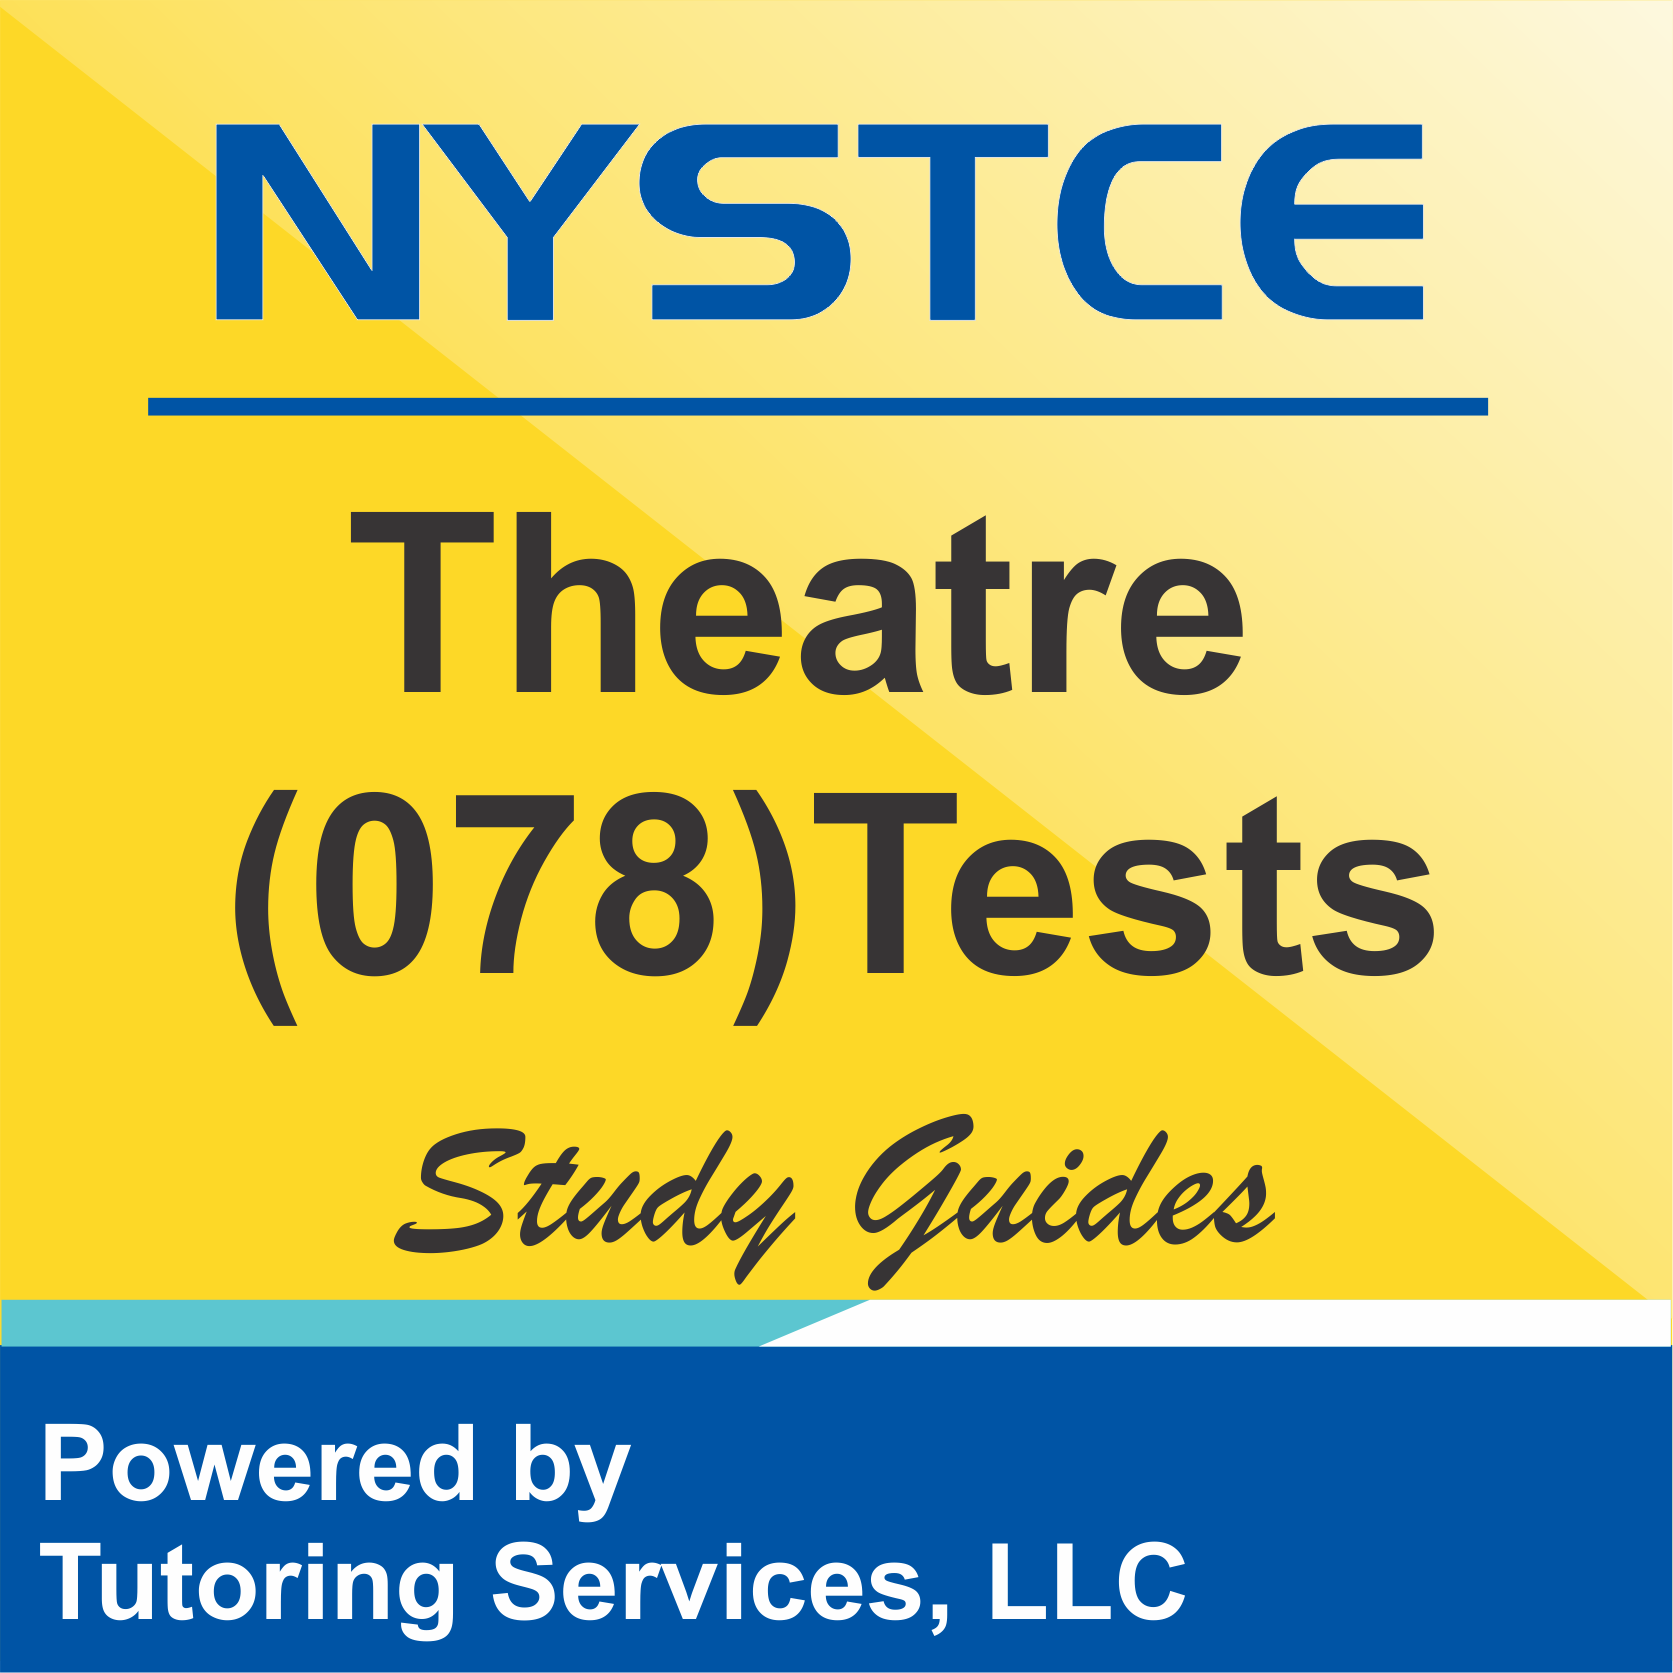 NYSTCE Teaching Certification Information for Communication and Quantitative Skills 080